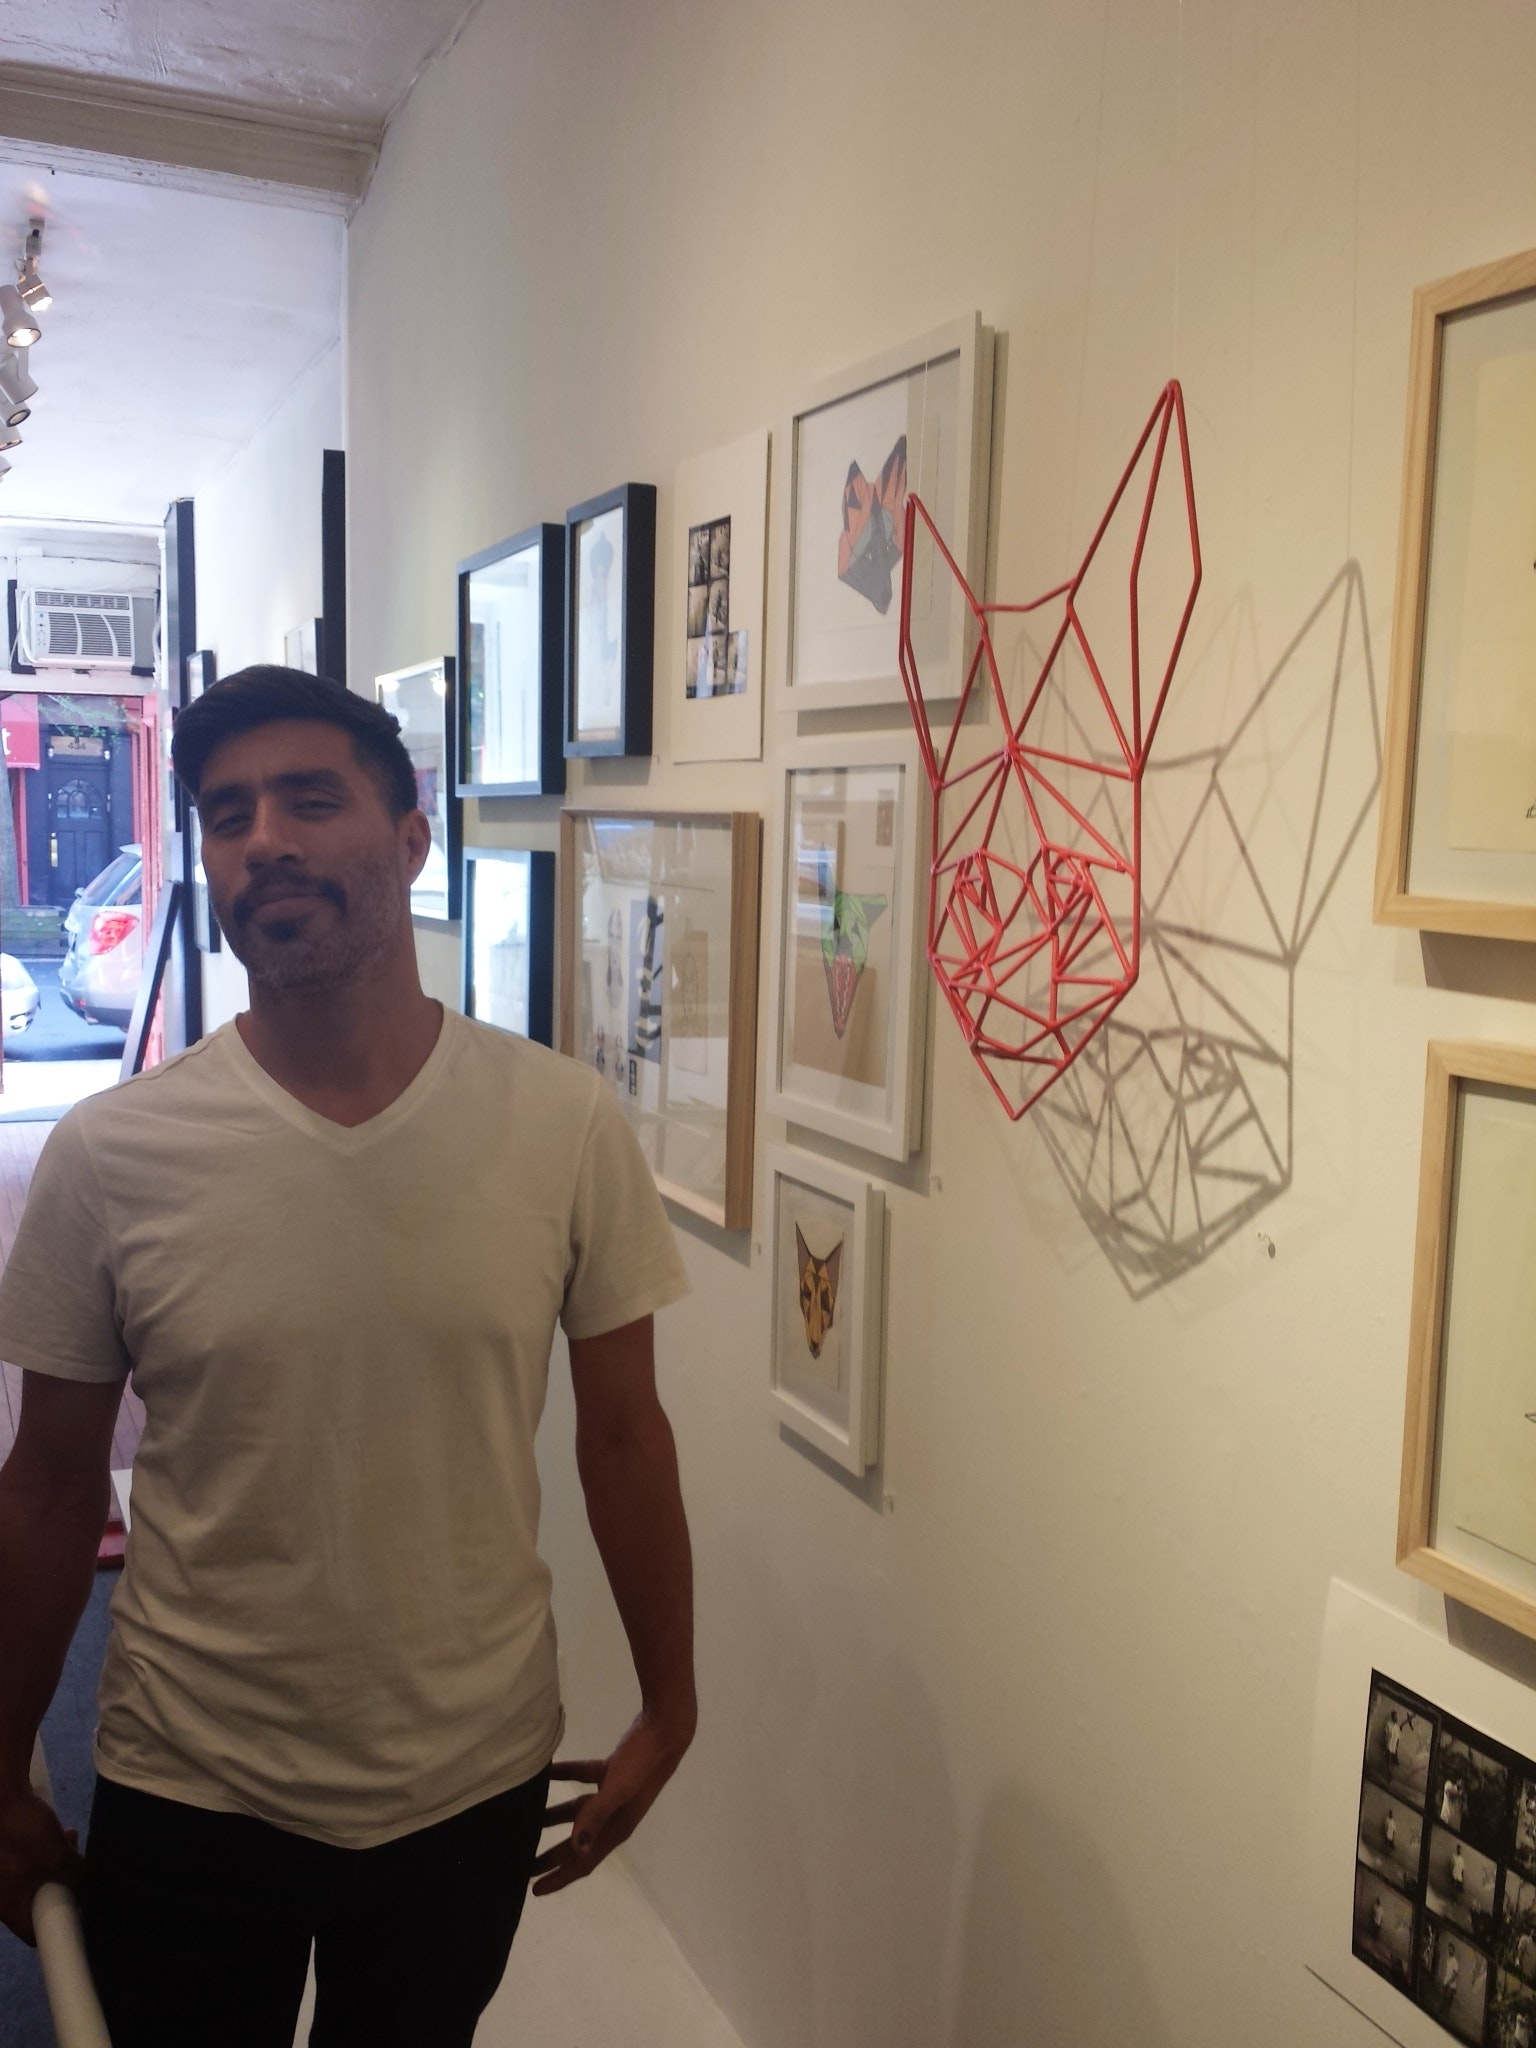 Bebo in front of his Wire sculpture